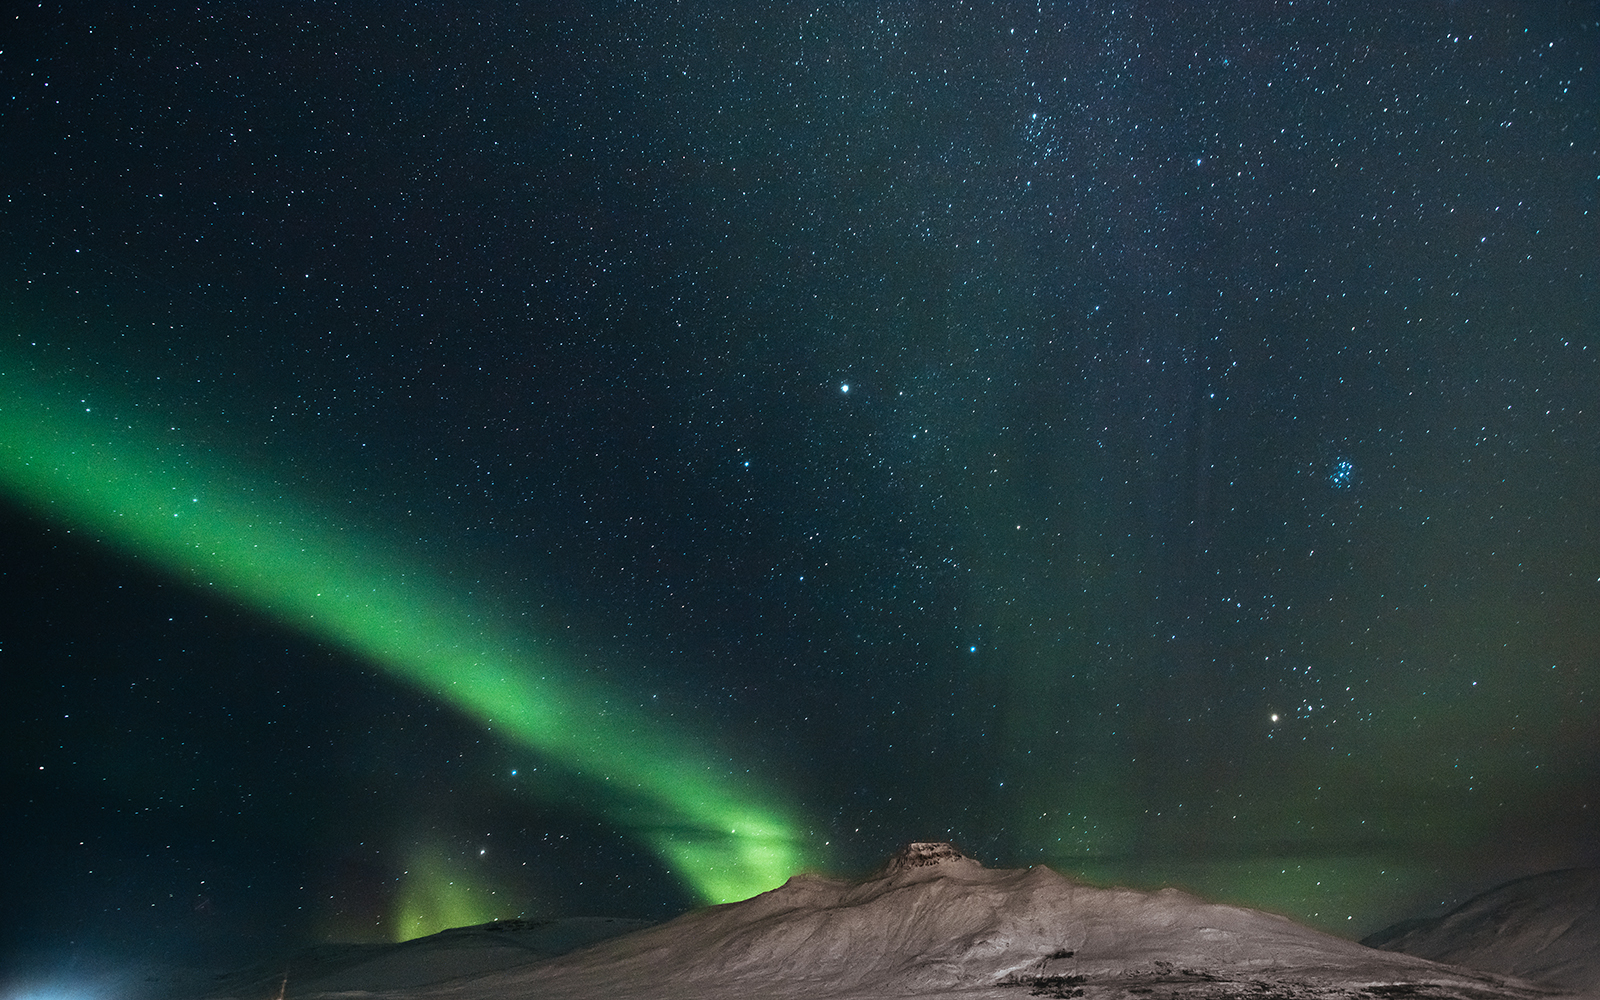 Olivet alumni_Nick Rasmussen_Northern Lights_Iceland_artist residency_photographer_photography_Web2.jpg